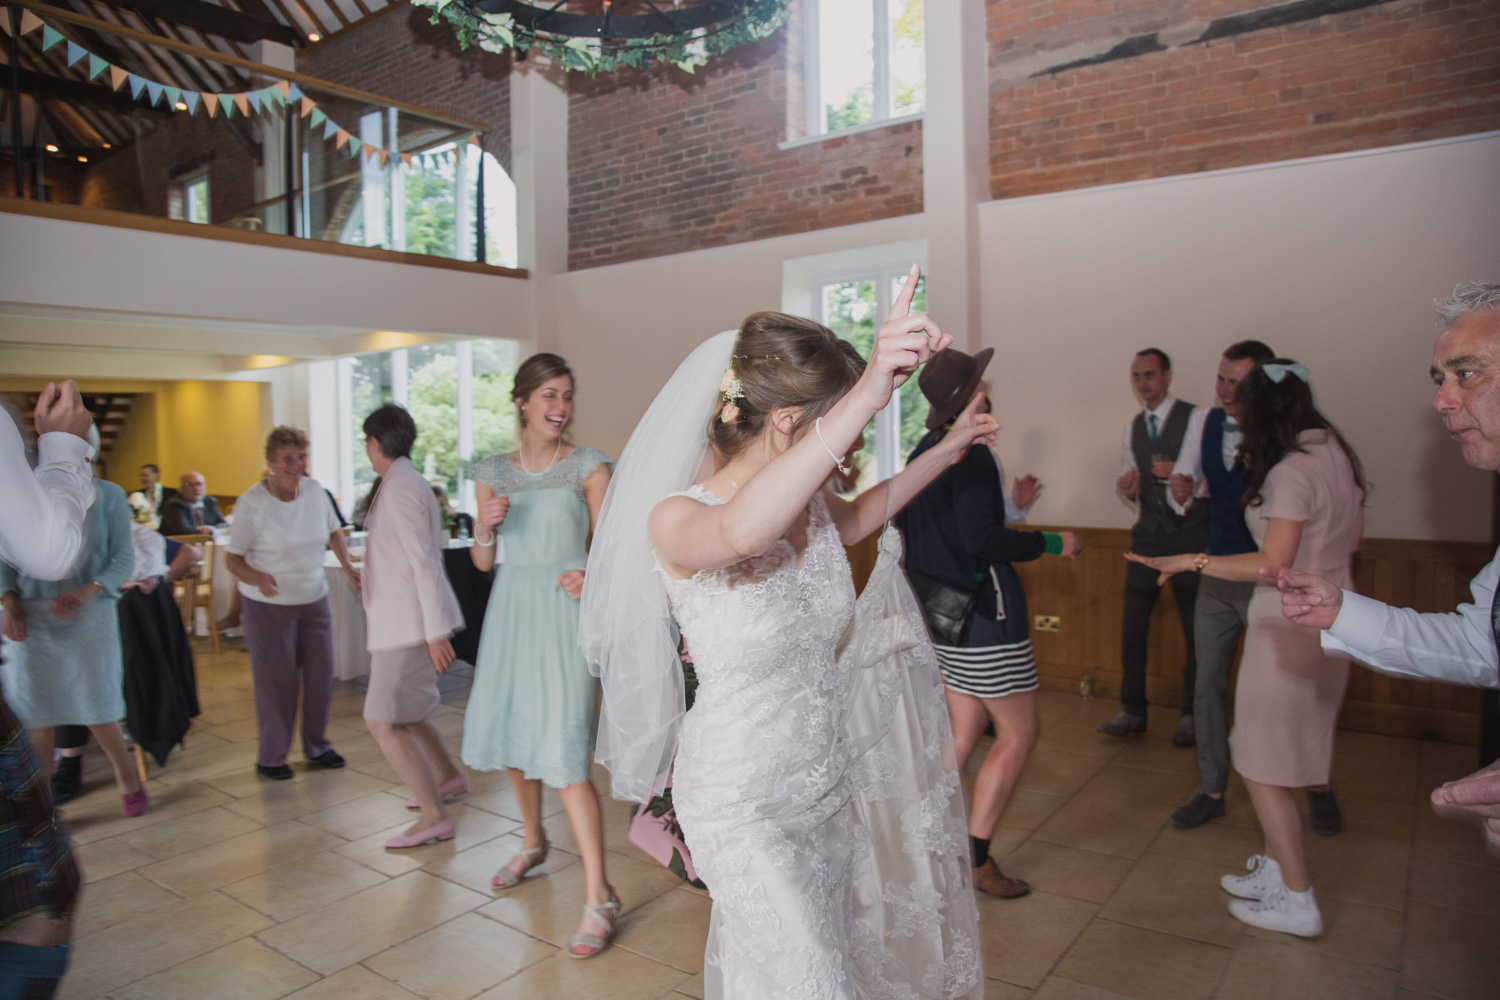 Delbury-Hall-Wedding-Photography-Shropshire-107.jpg